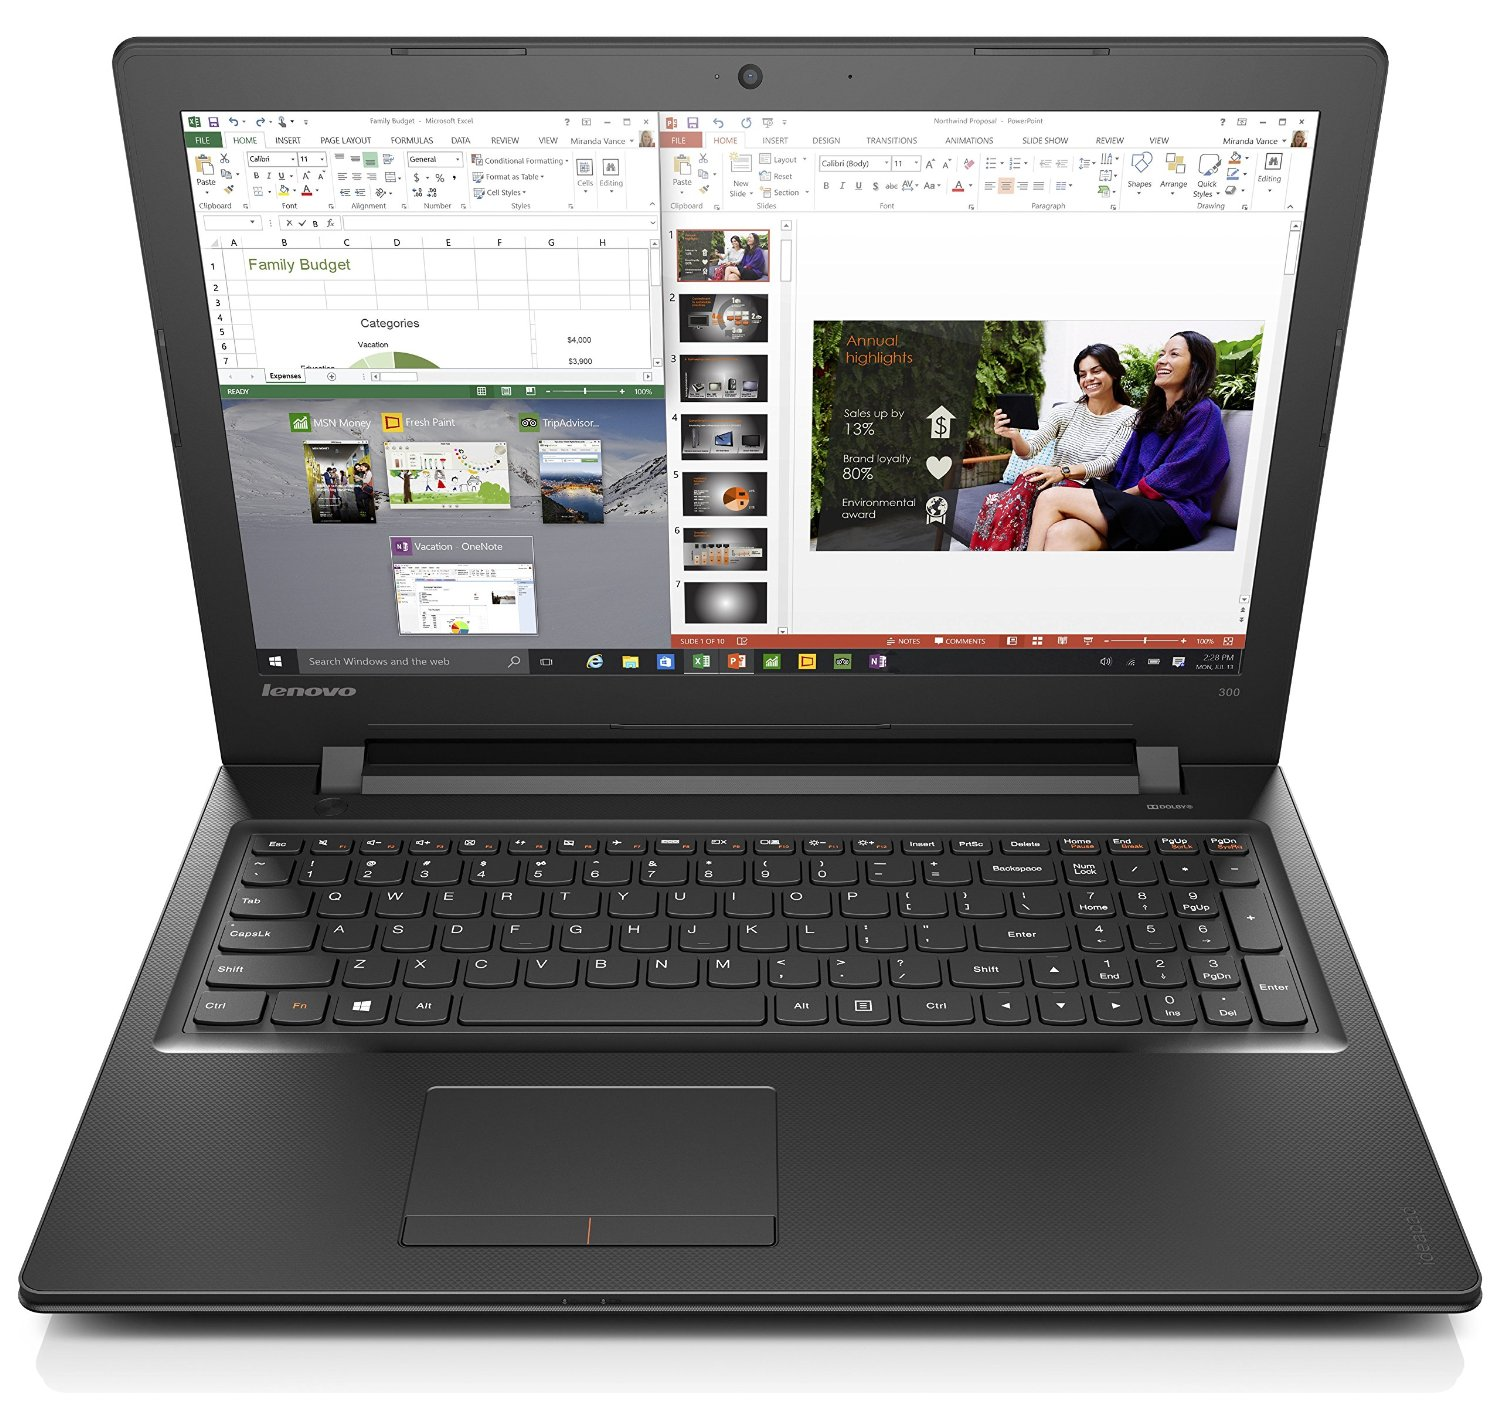 Lenovo Ideapad 300 15.6-Inch HD Laptop (Black) - (Intel Core i7-6500U, 8 GB RAM, 1 TB HDD, Intel HD Graphics Card, Windows 10)